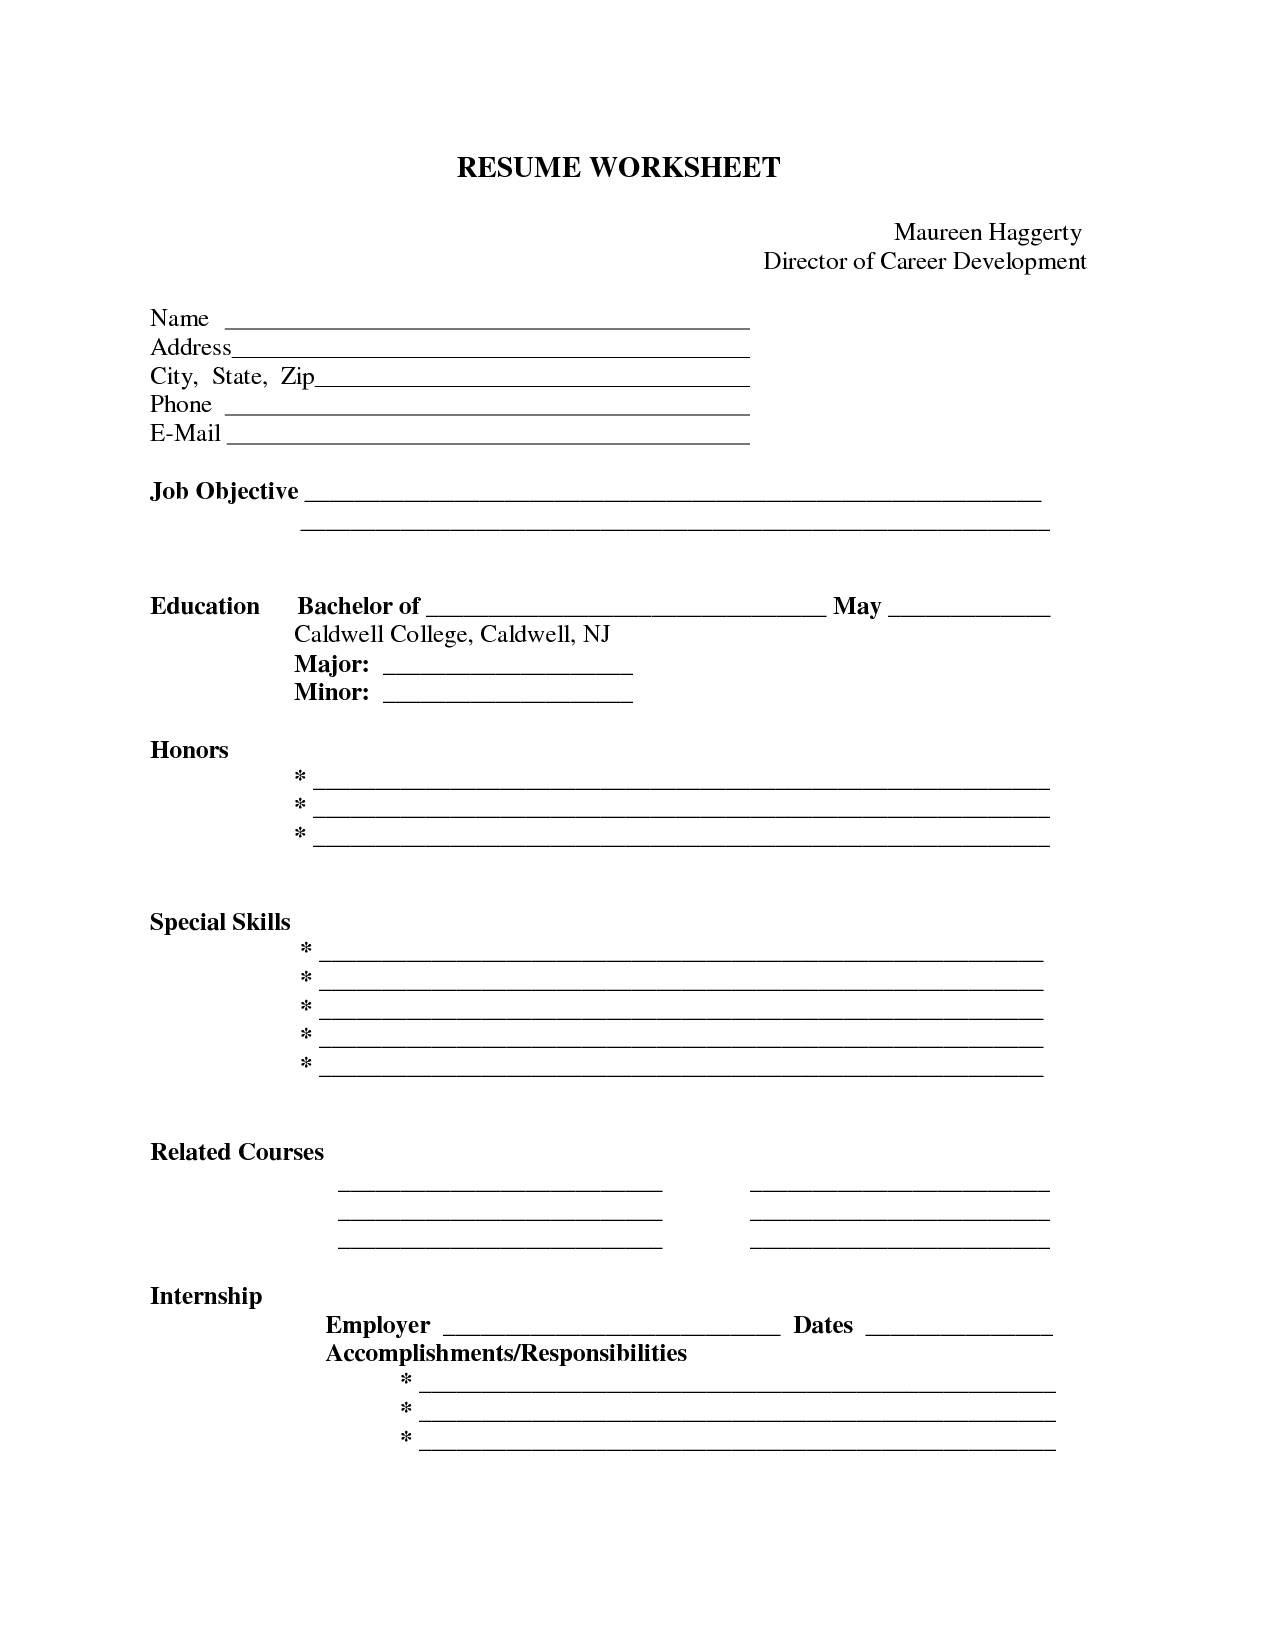 Printable Fill In The Blank Resume Templates - Tjfs-Journal - Free Printable Resume